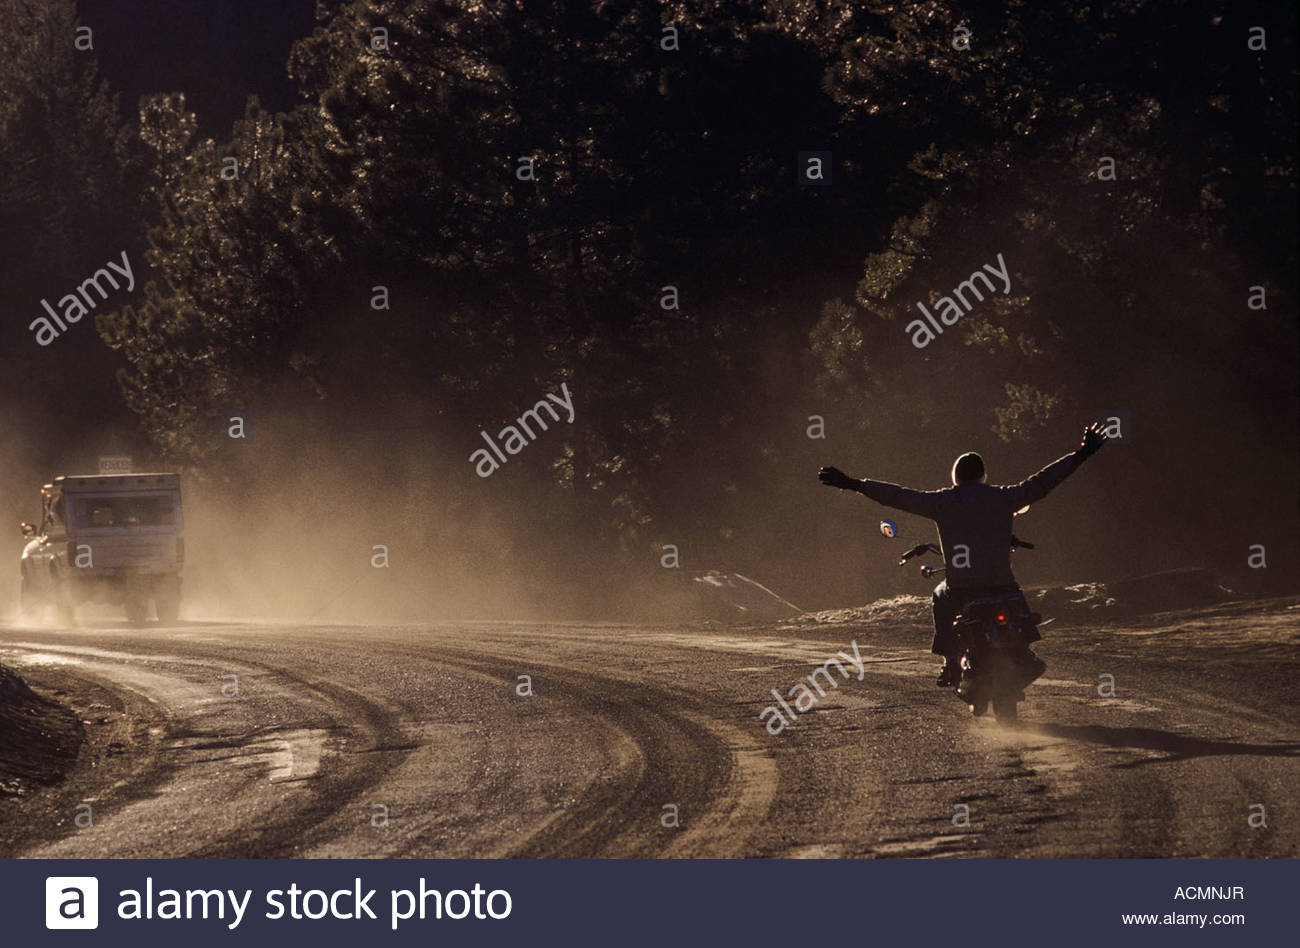 No hands, man riding motorcycle off into the distance Mt Lemmon Highway Tucson - Stock Image